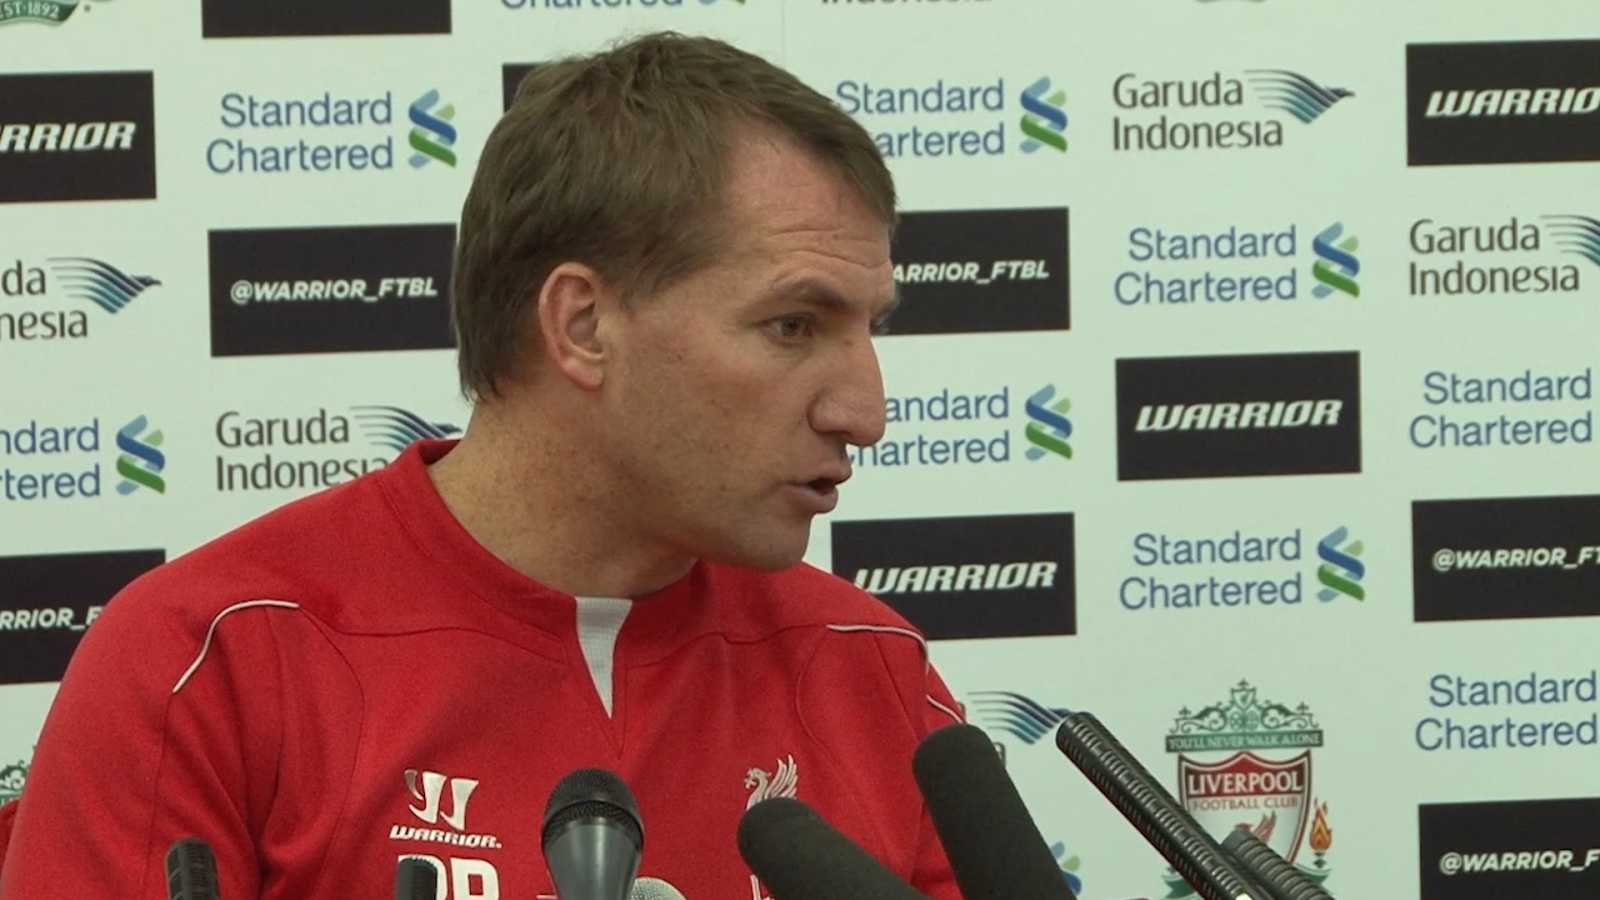 Brendan Rodgers: Balotelli doesn't suit Liverpool style